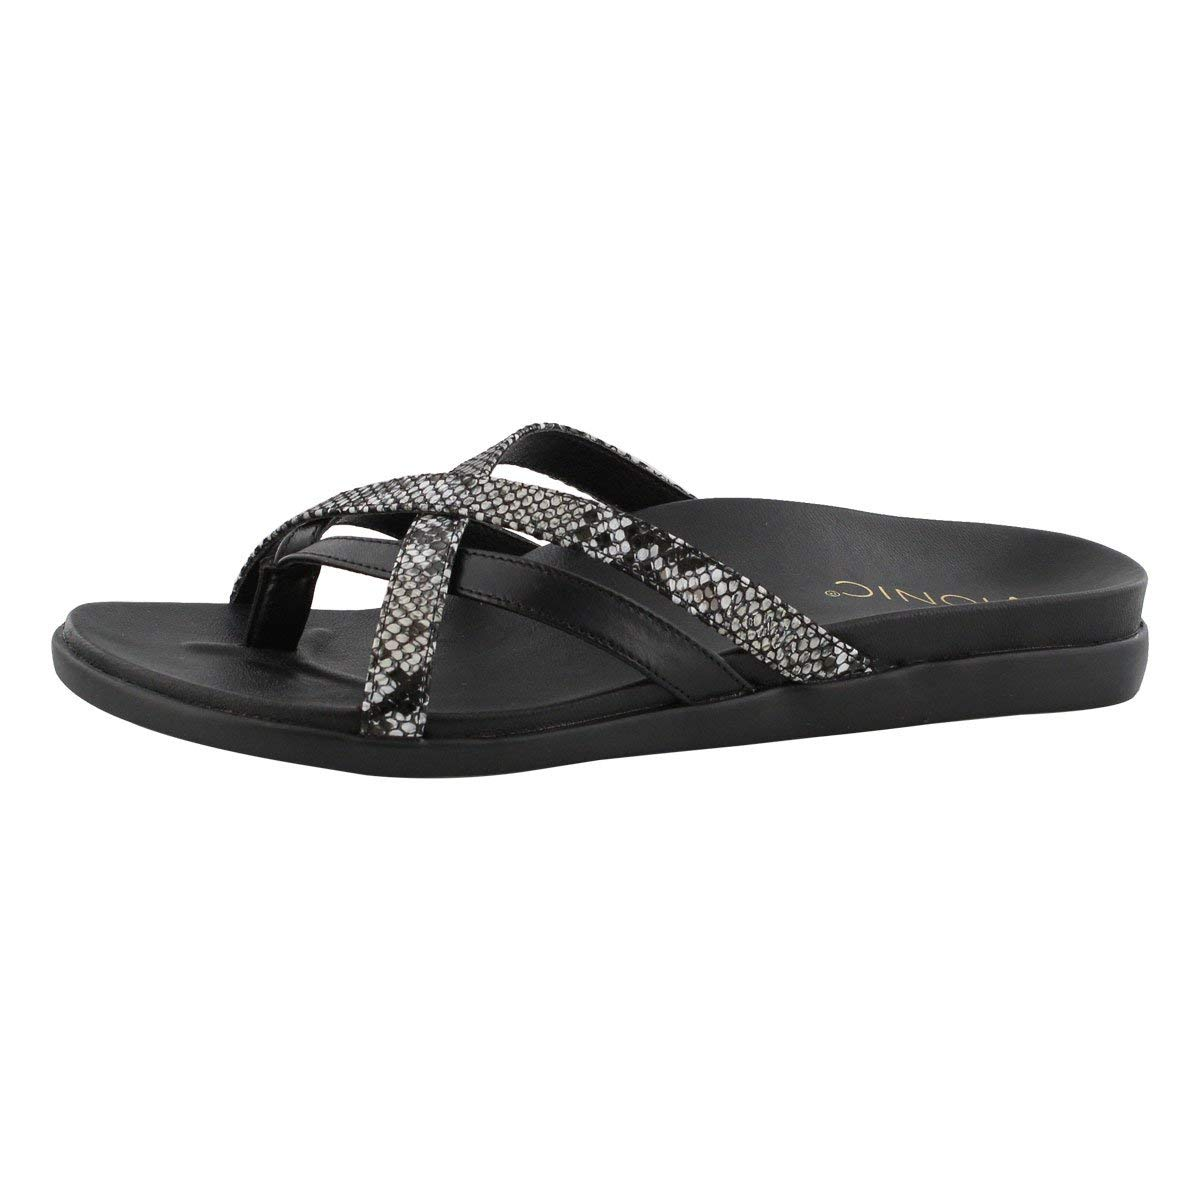 Nat snake Vionic Women's Palm Daisy Arch Support Thong Sandal